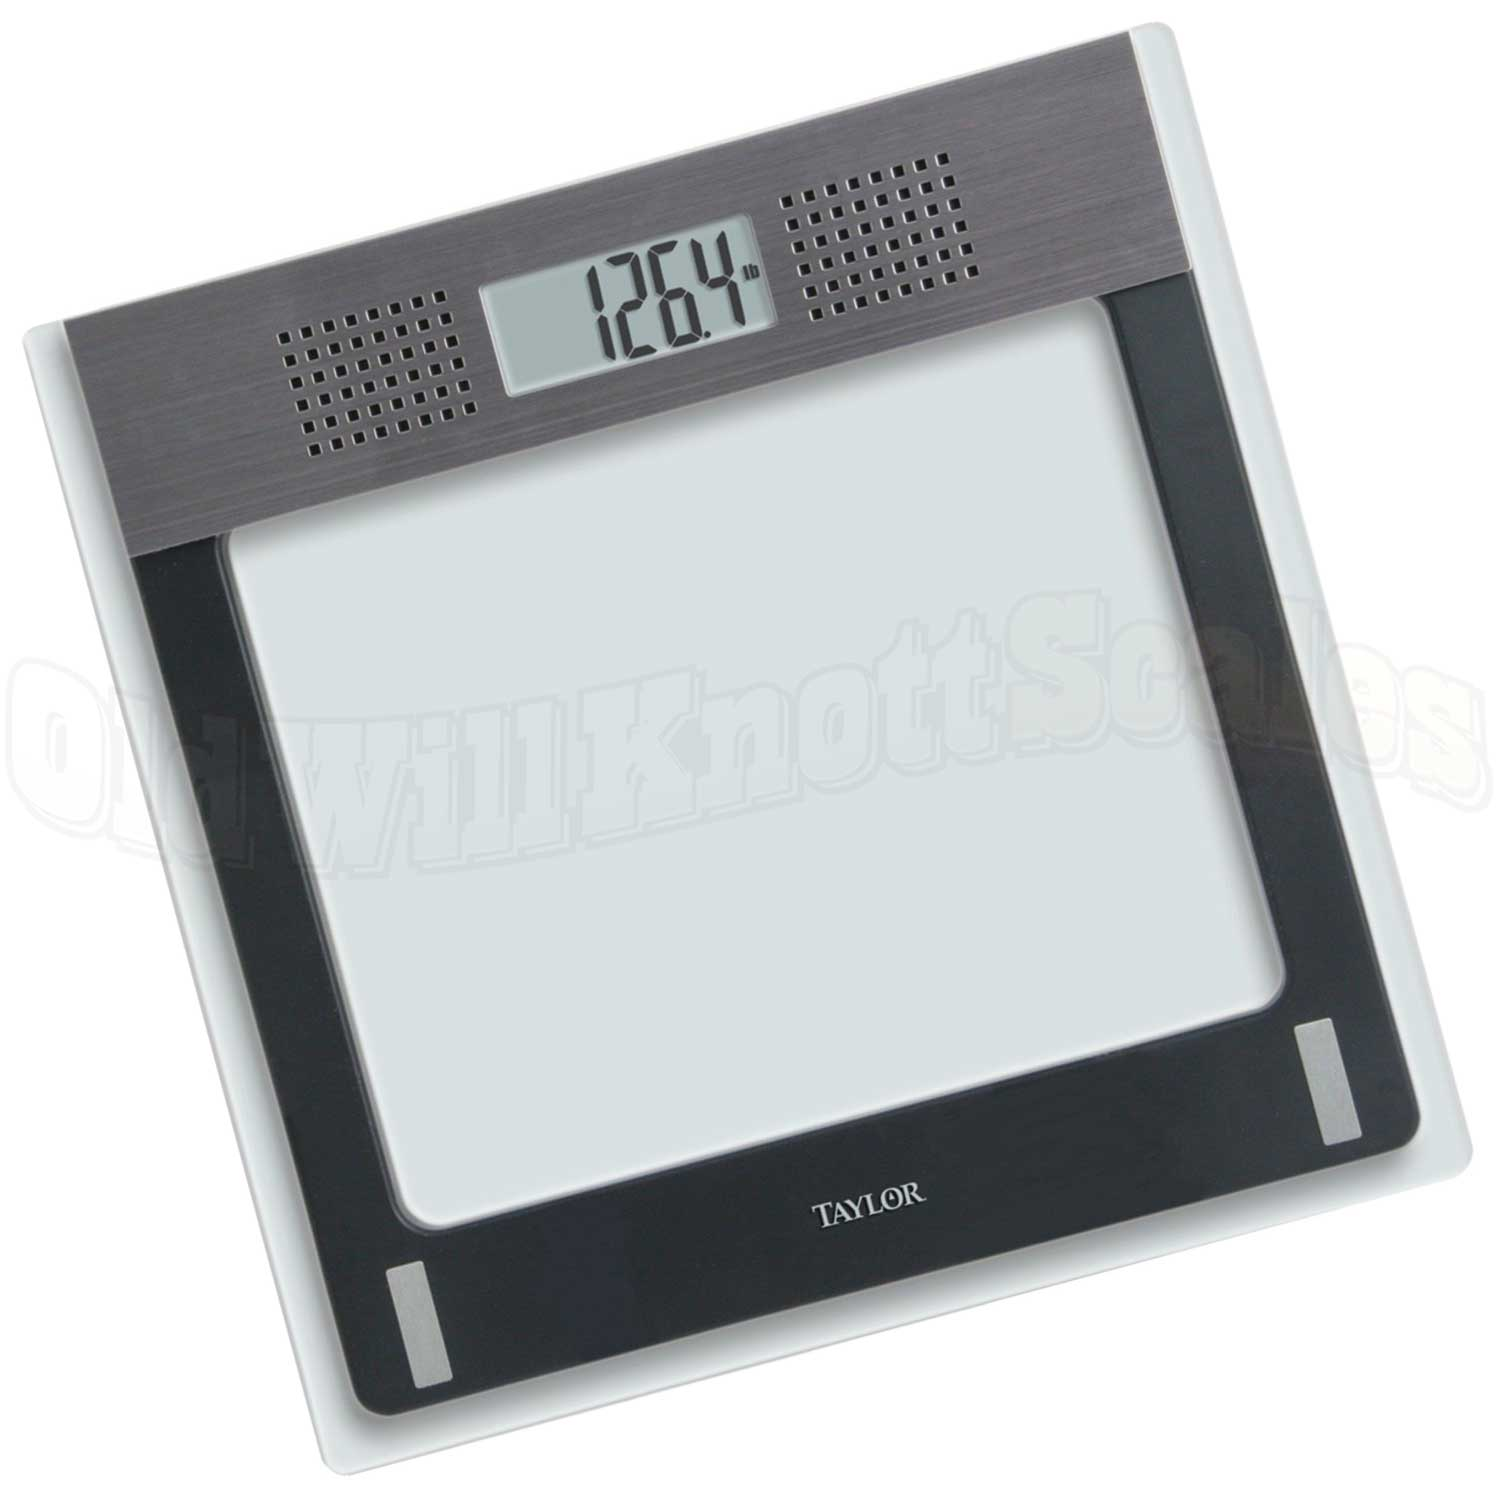 scales taylor glass amazon huge scale health care com with dp personal readout bathroom tempered lighted